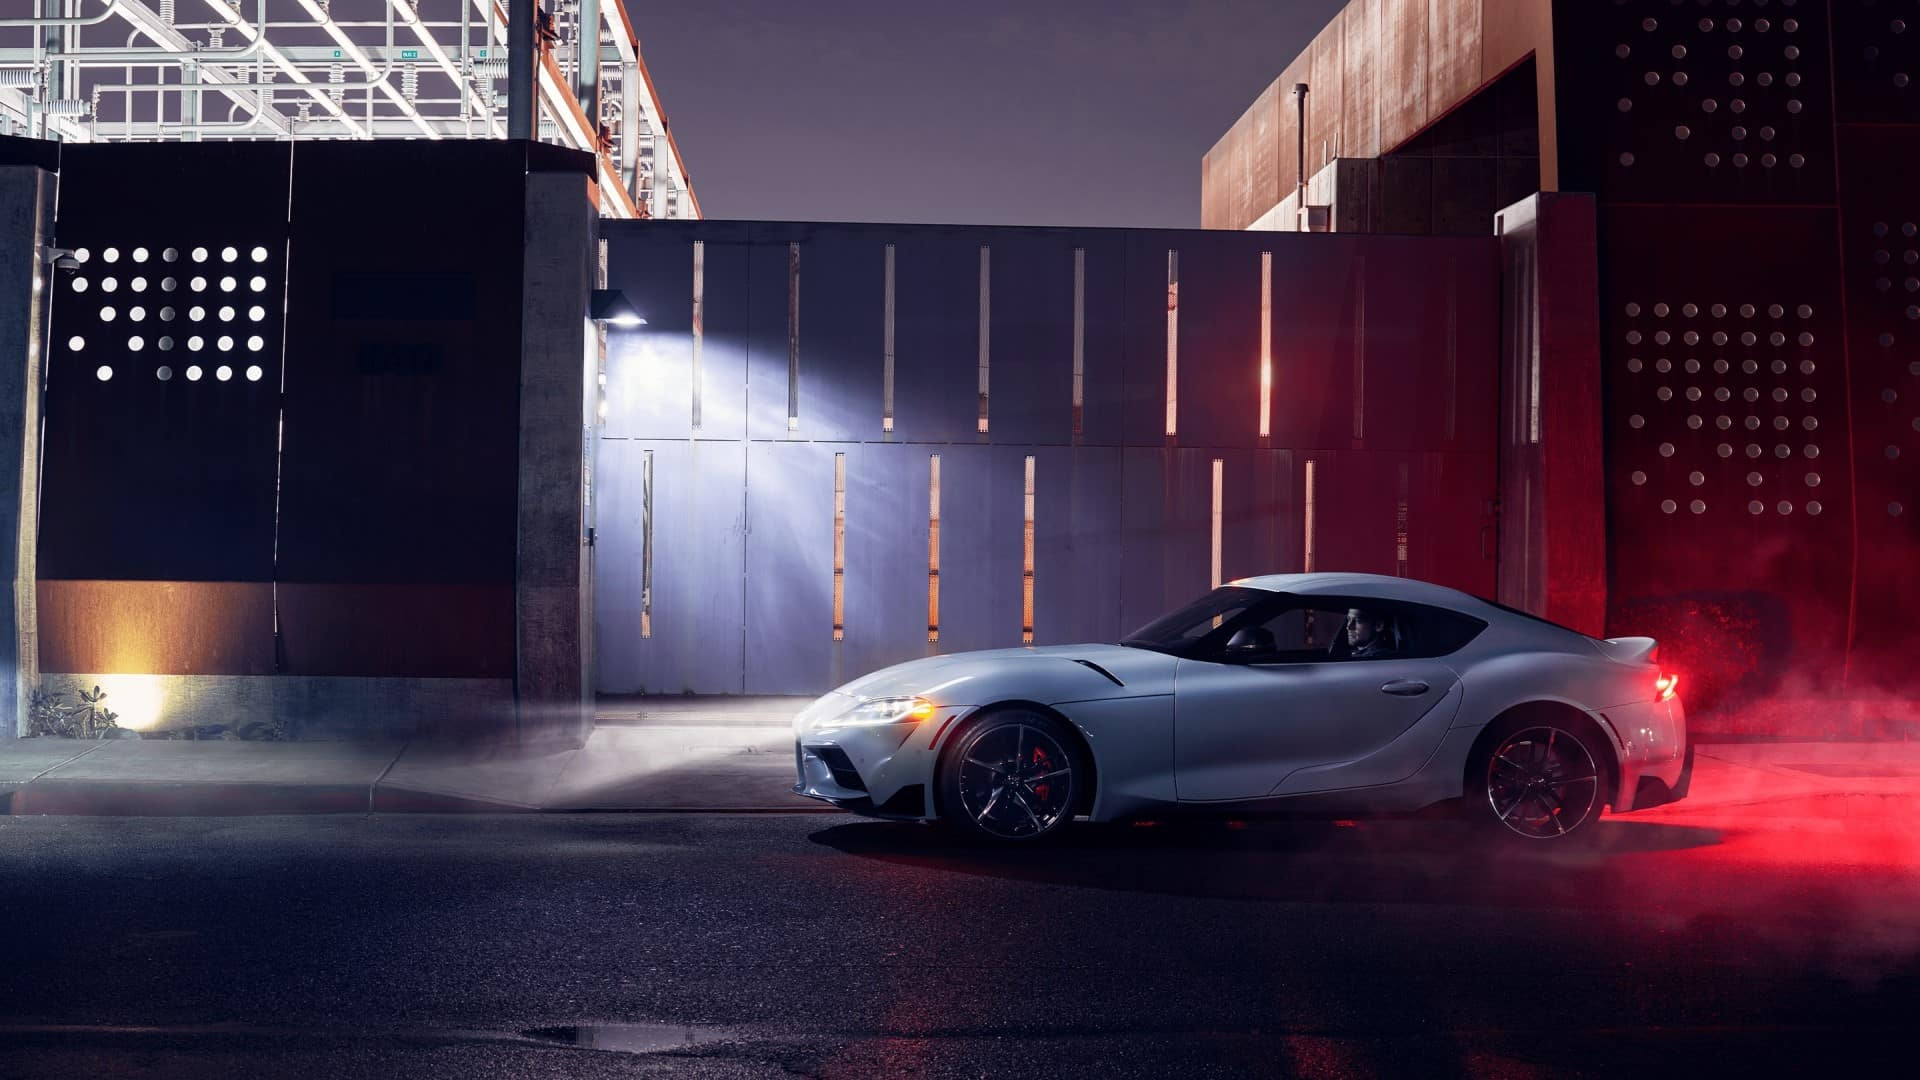 Toyota_Supra_Side_Profile_At_Night